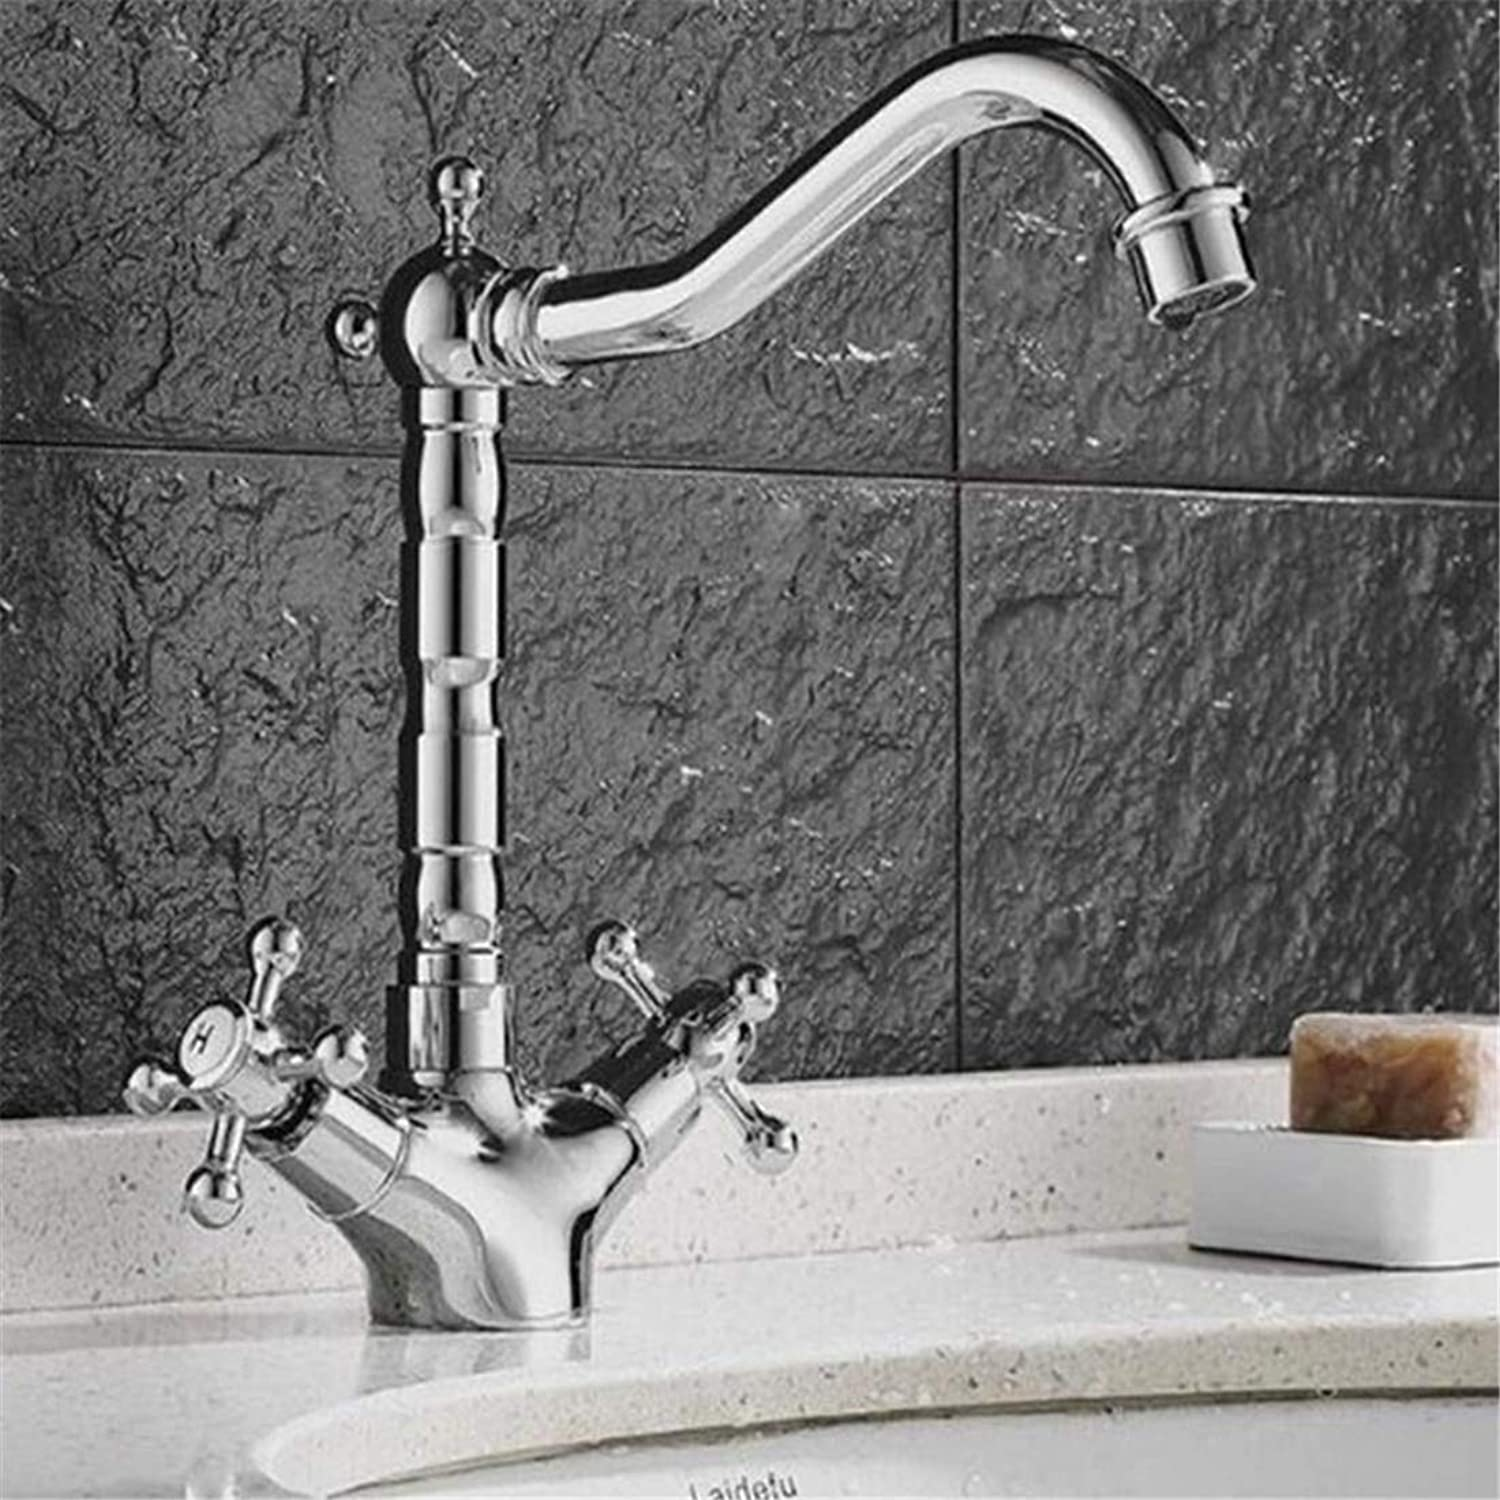 Faucets Basin Mixerfor Bathroom Sink Water Saving Inductive Electric Water Tap Mixer Free Touchles